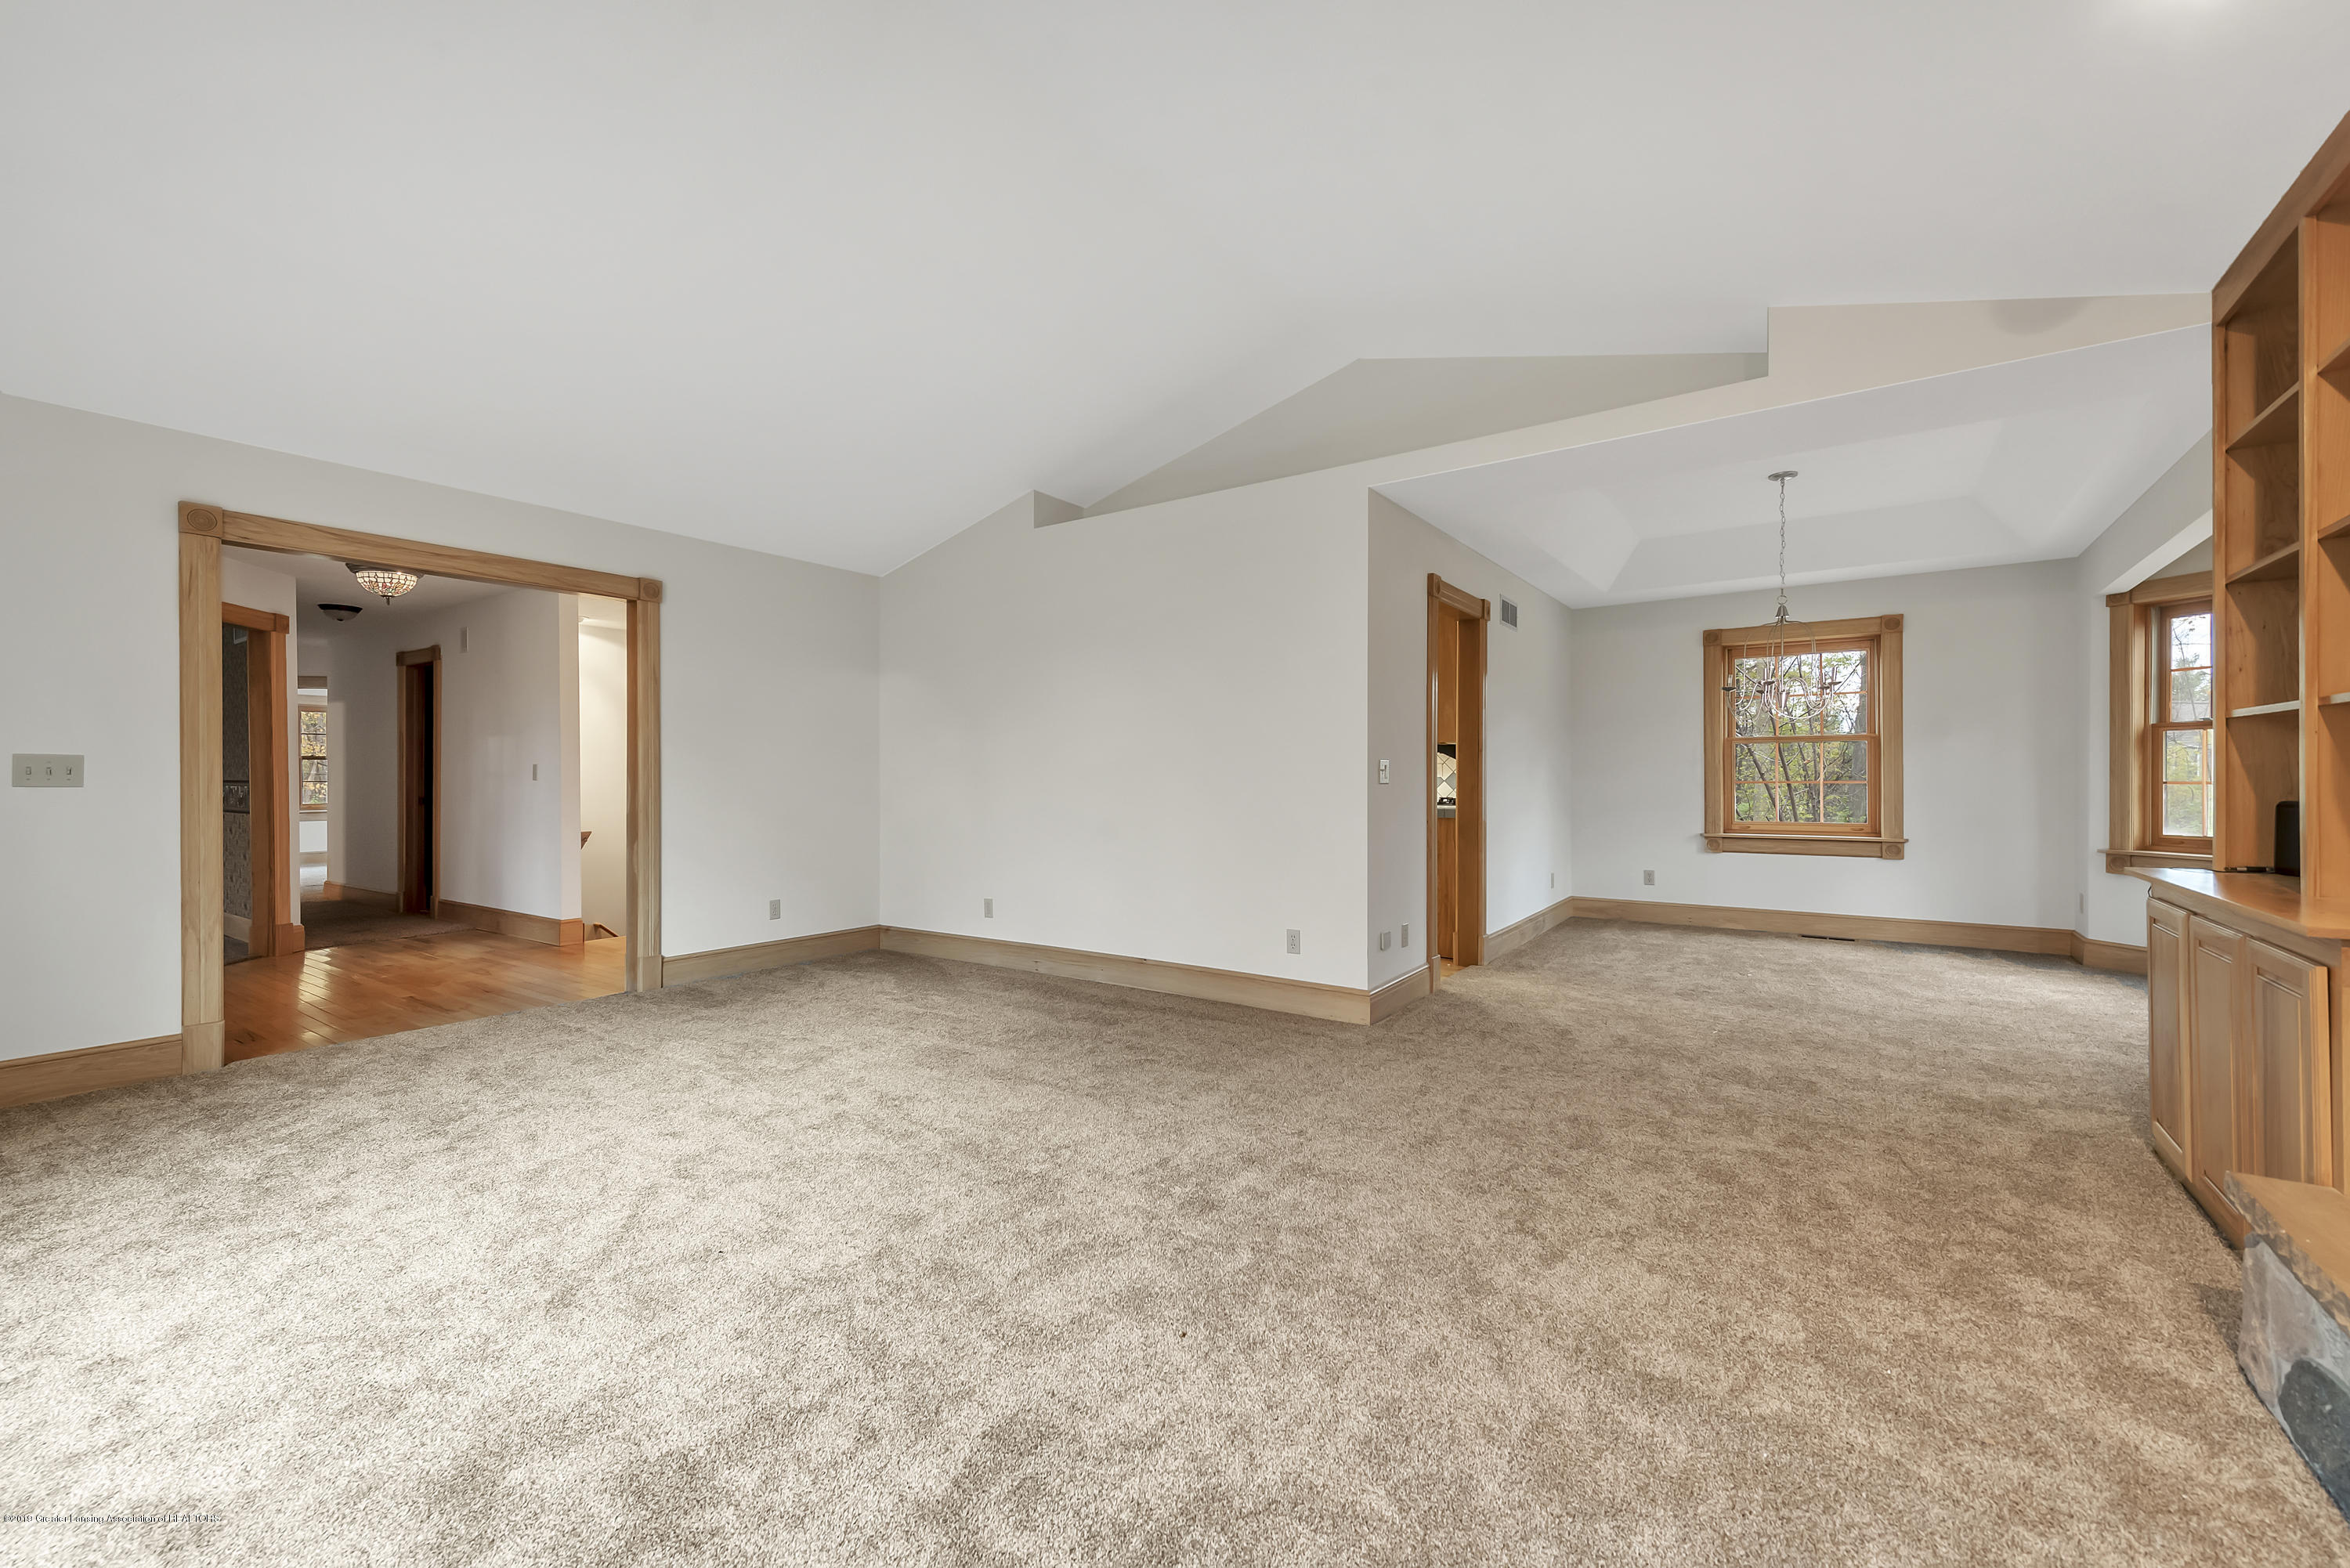 10865 Barnes Rd - 10865-Barnes-Rd-WindowStill-Real-Estate- - 9